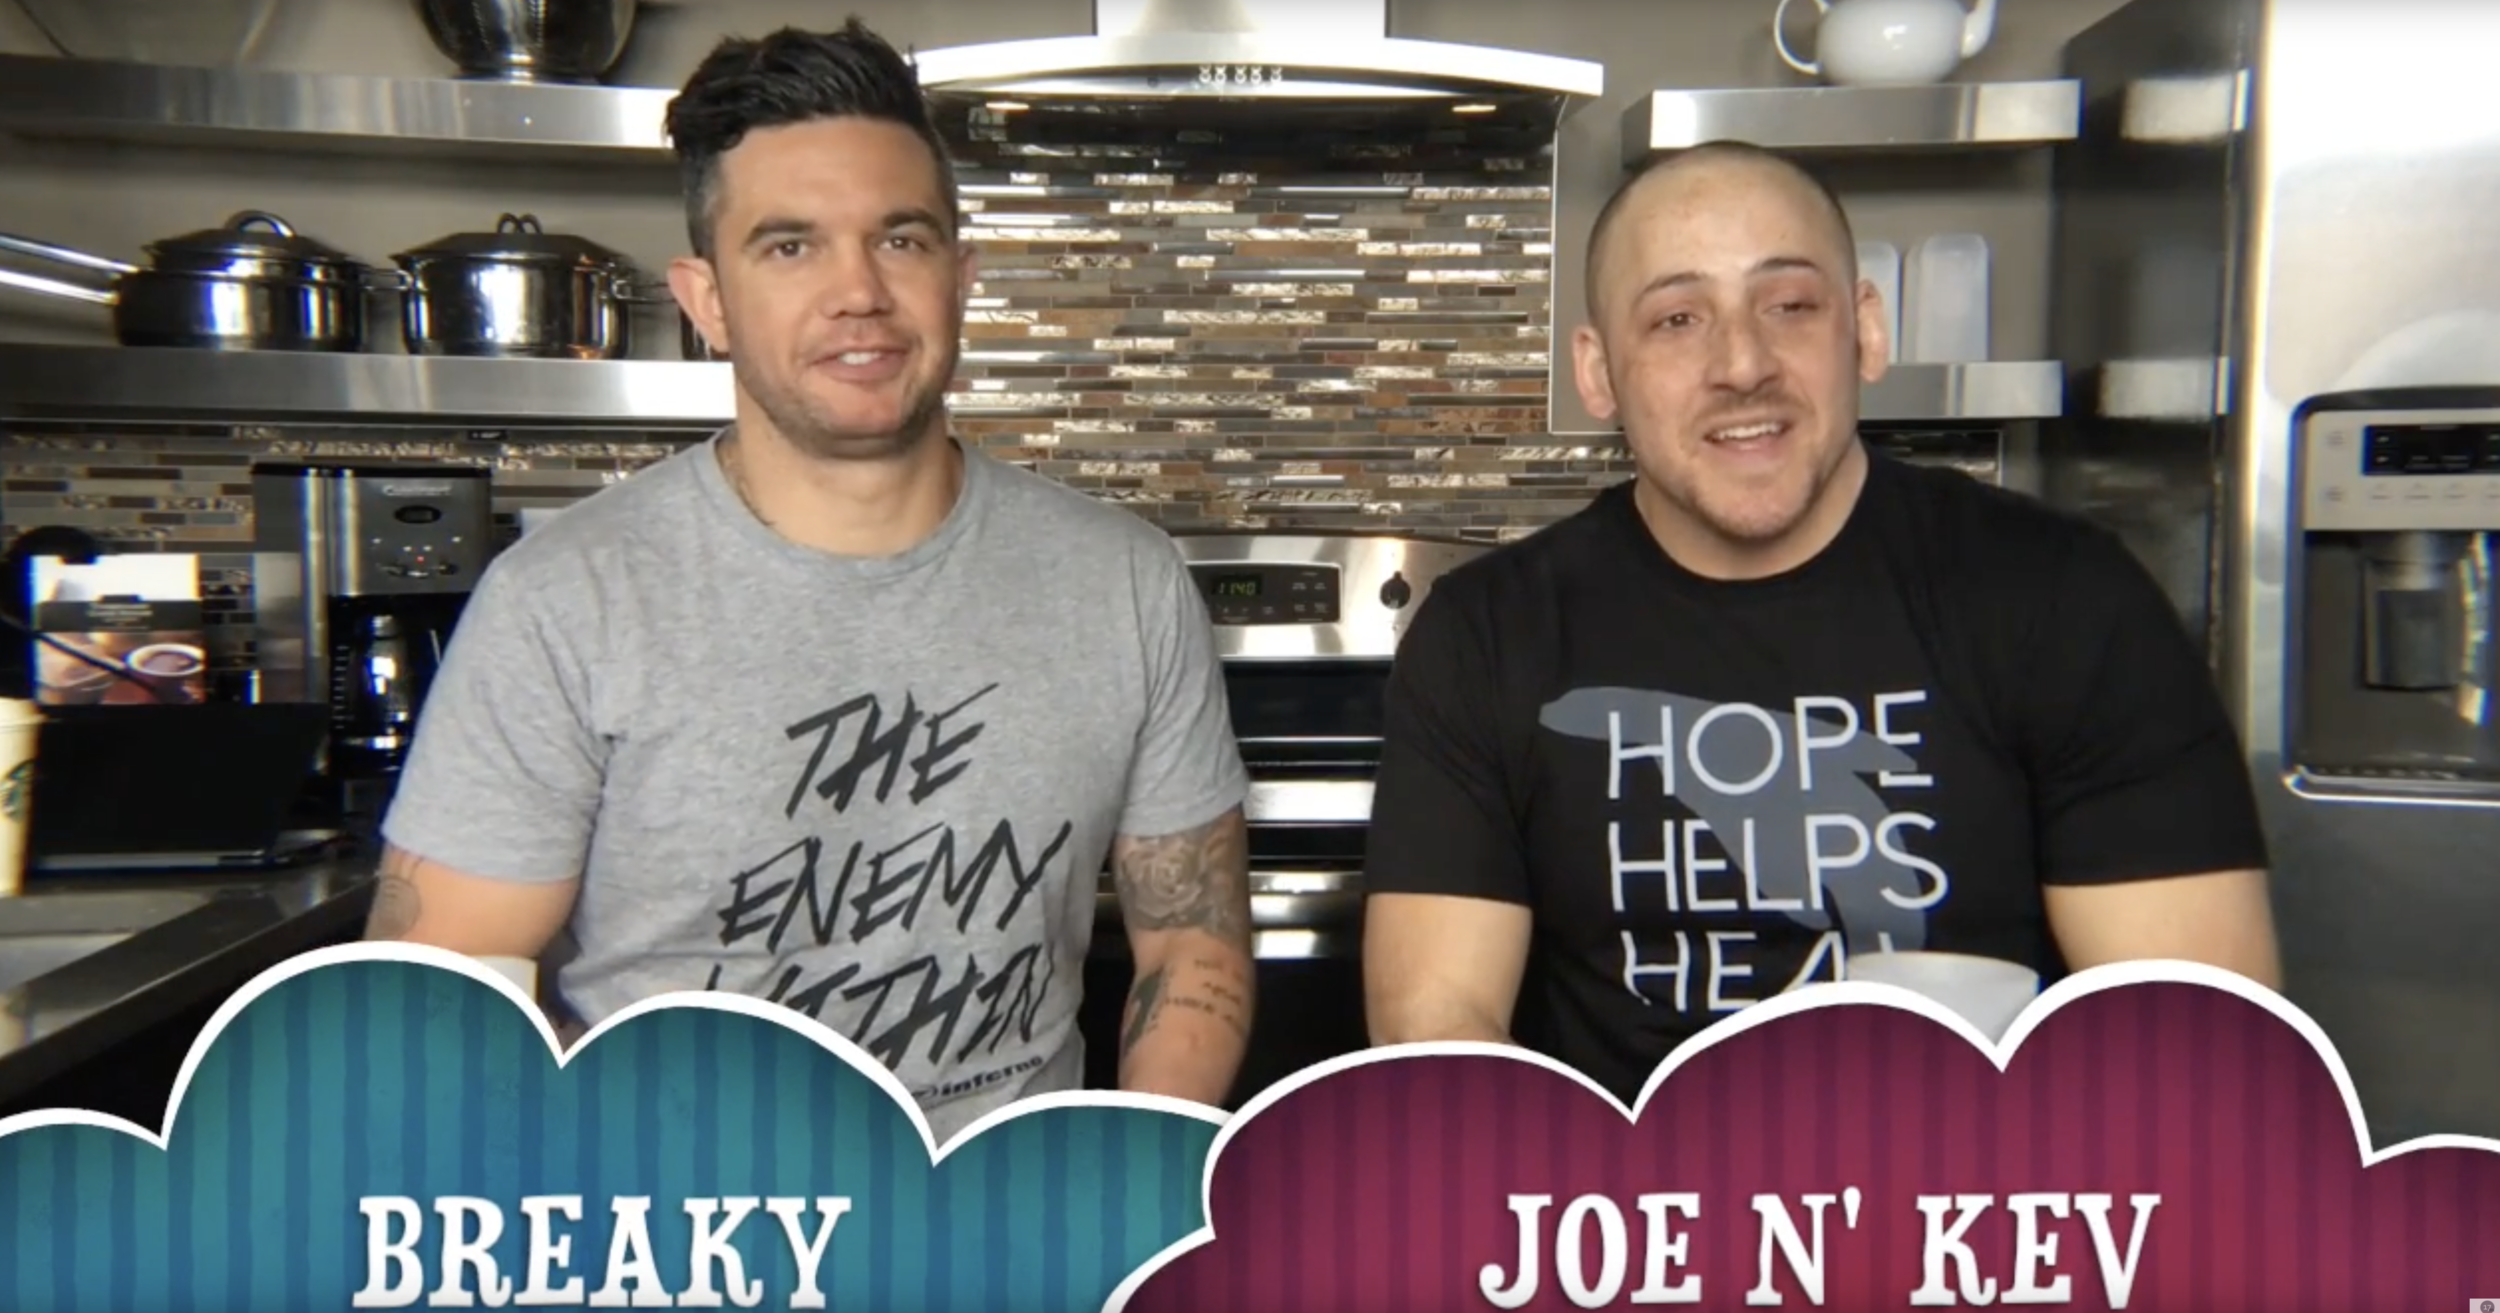 SHOW: BREAKY with JOE & KEV   Breaky W Joe N' Kev, Is an online TV Series about brotherhood, team work, and sharing messages of hope while living with and battling Bipolar Disorder, Mental Illness, and Brain Pain.